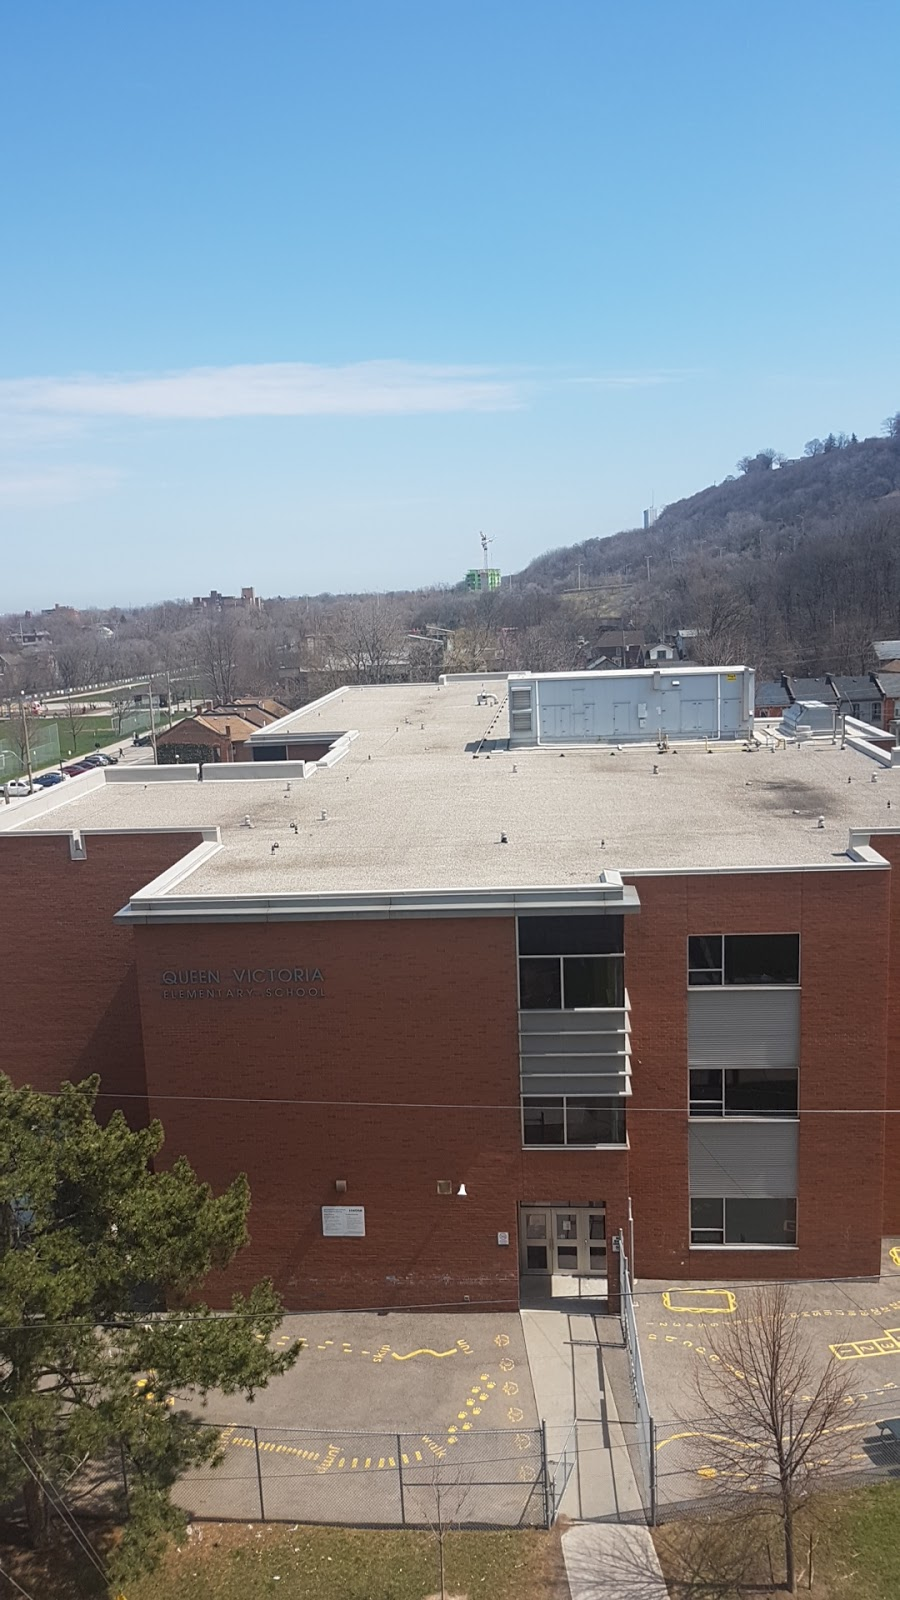 Queen Victoria Elementary School   school   166 Forest Ave, Hamilton, ON L8N 0A6, Canada   9056675880 OR +1 905-667-5880